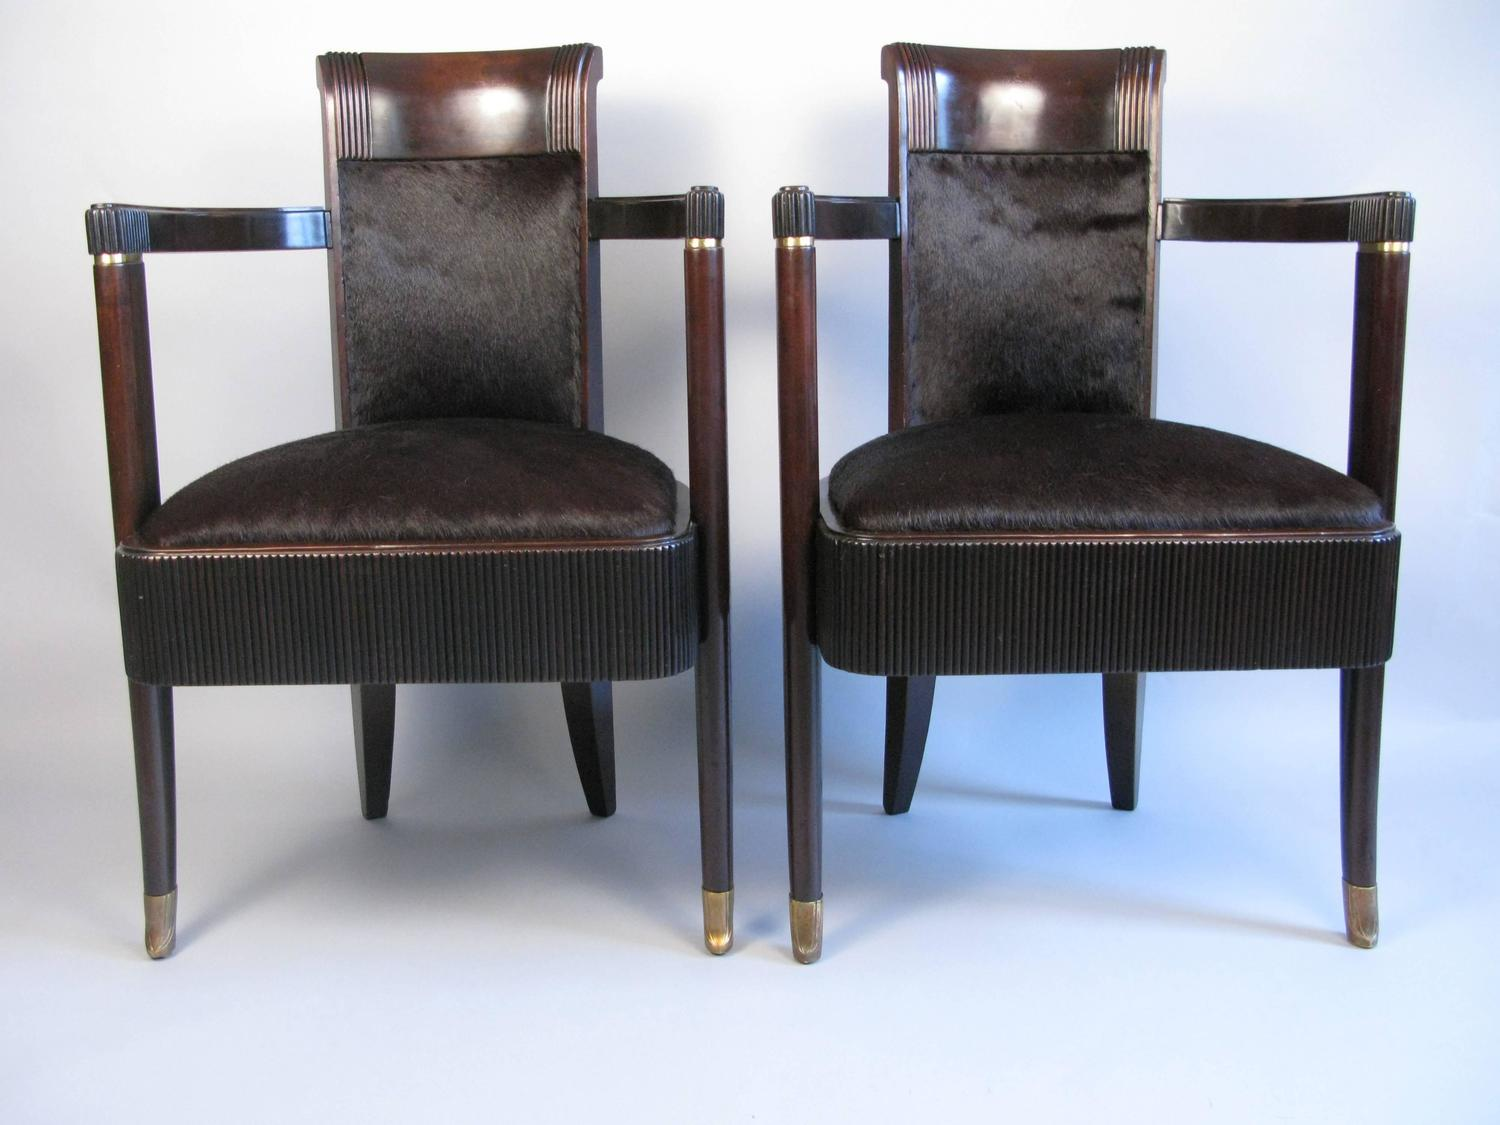 Pair Of Dining Chairs From The French Luxury Liner S S Normandie 1935 1942 For Sale At 1stdibs